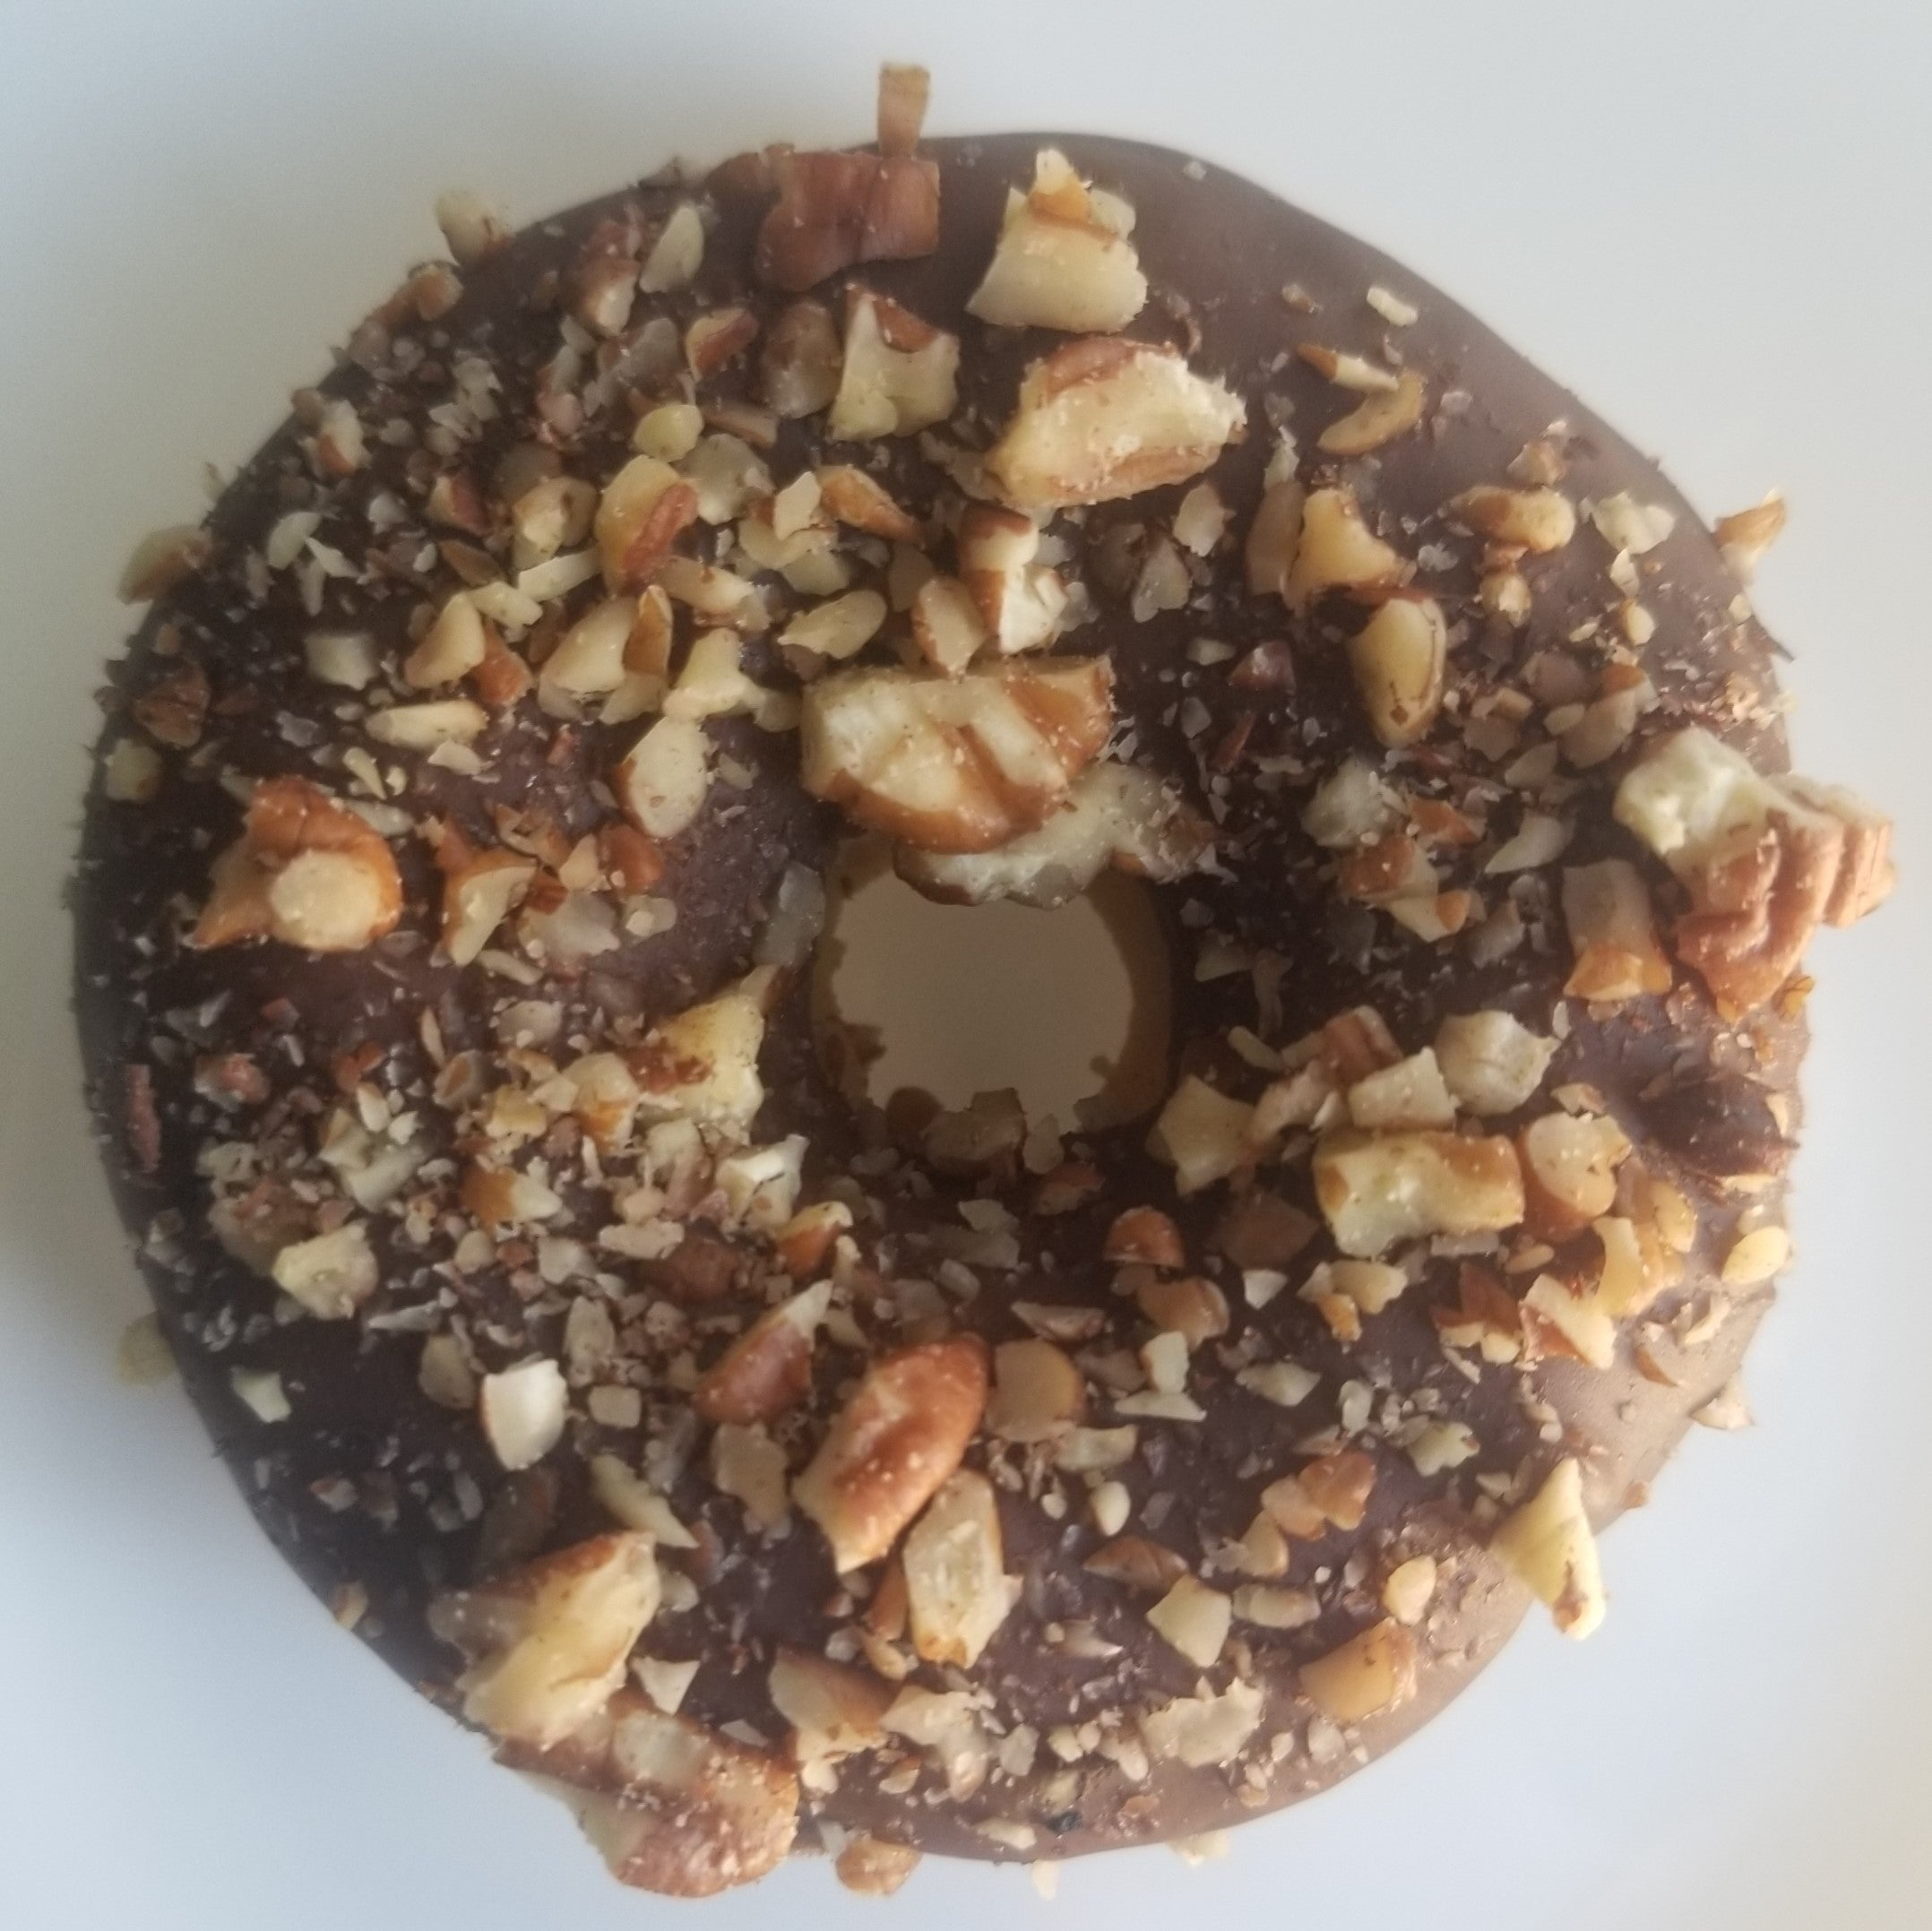 Lo-Ca Plain Donut with Chopped Pecans (Calories 378 Net Carbs 2)